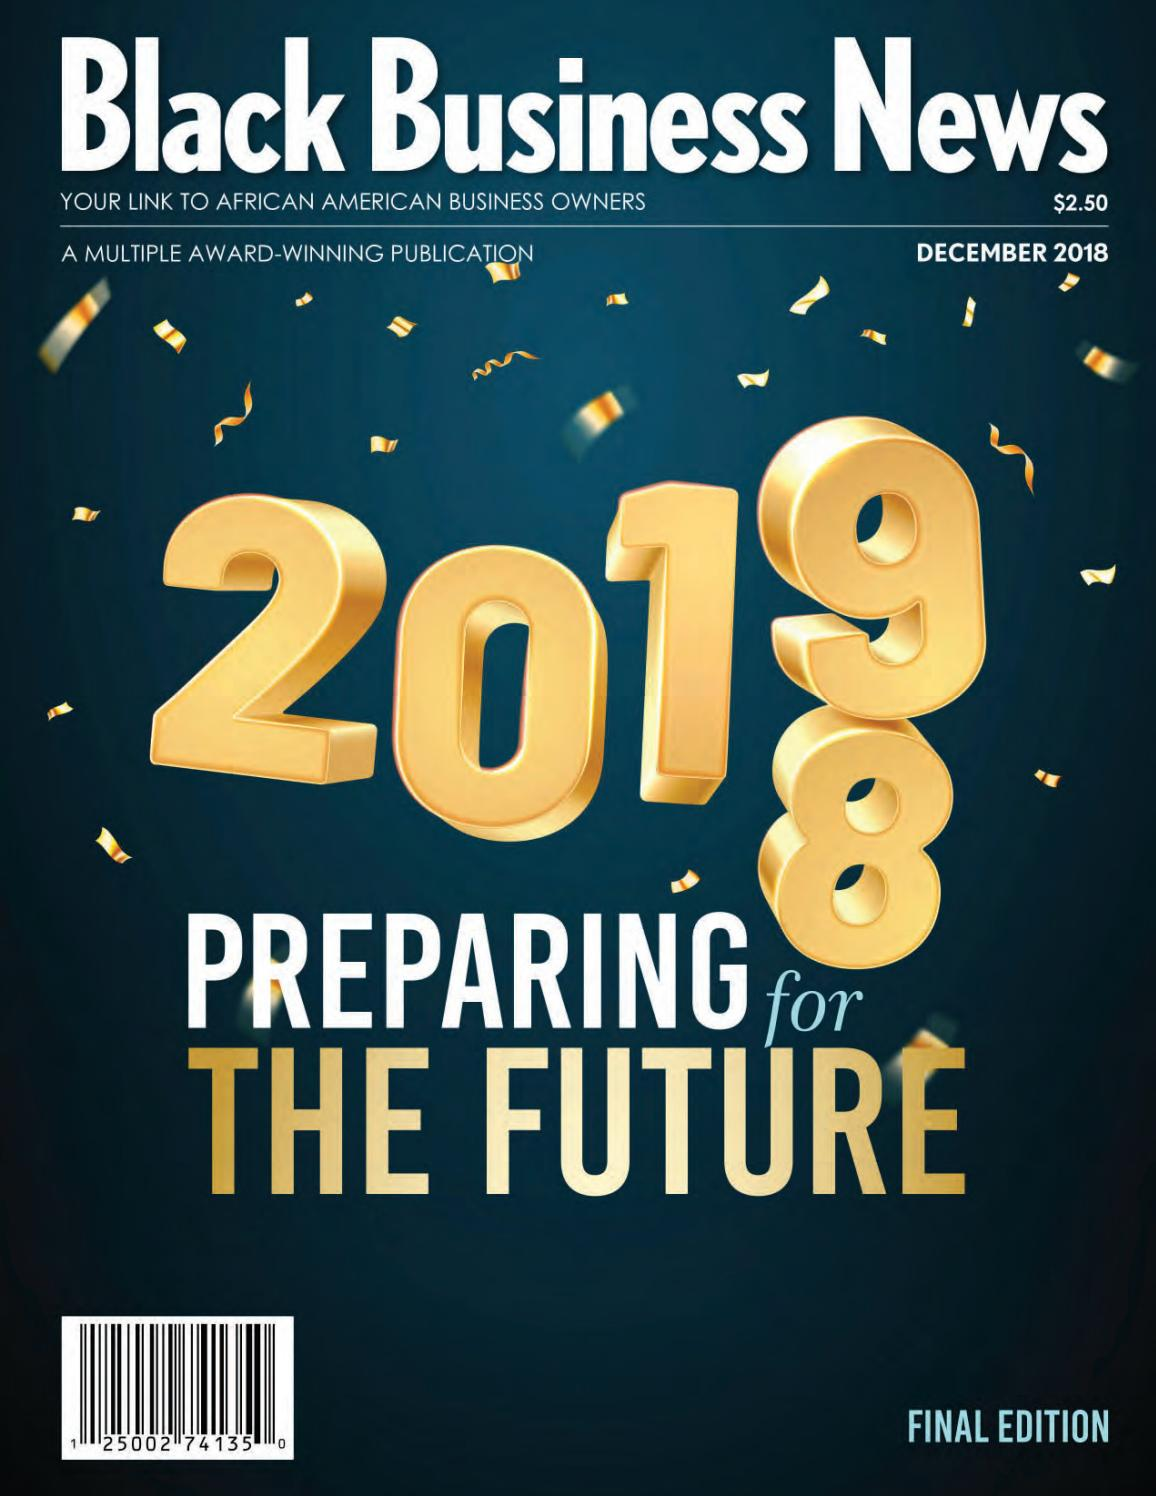 62193207 FINAL EDITION DECEMBER 2018 by Black Business News Group - issuu